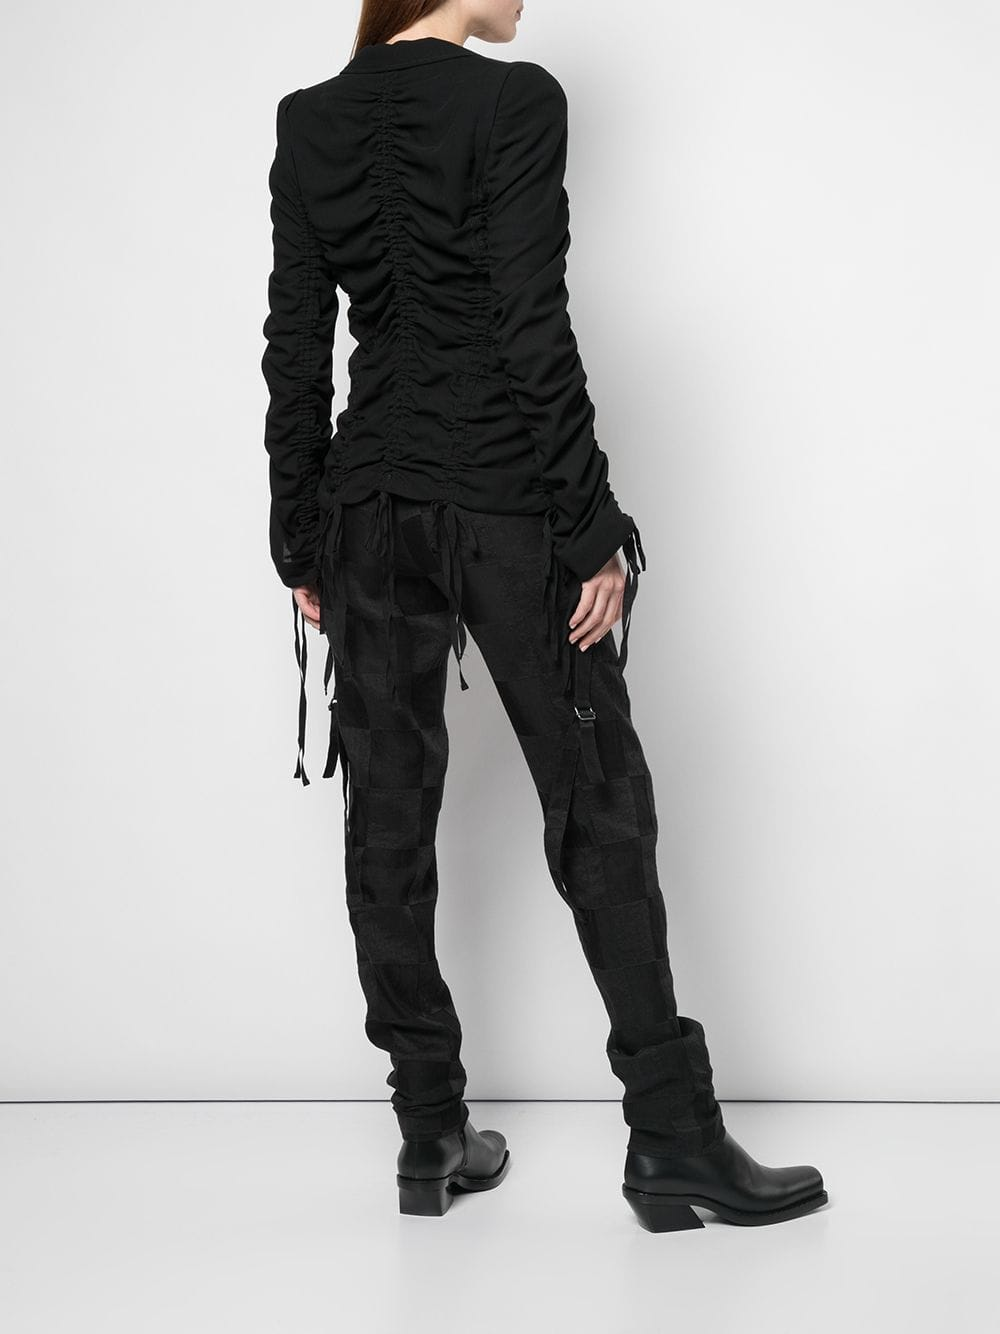 ANN DEMEULEMEESTER WOMEN RUCHED JACKET